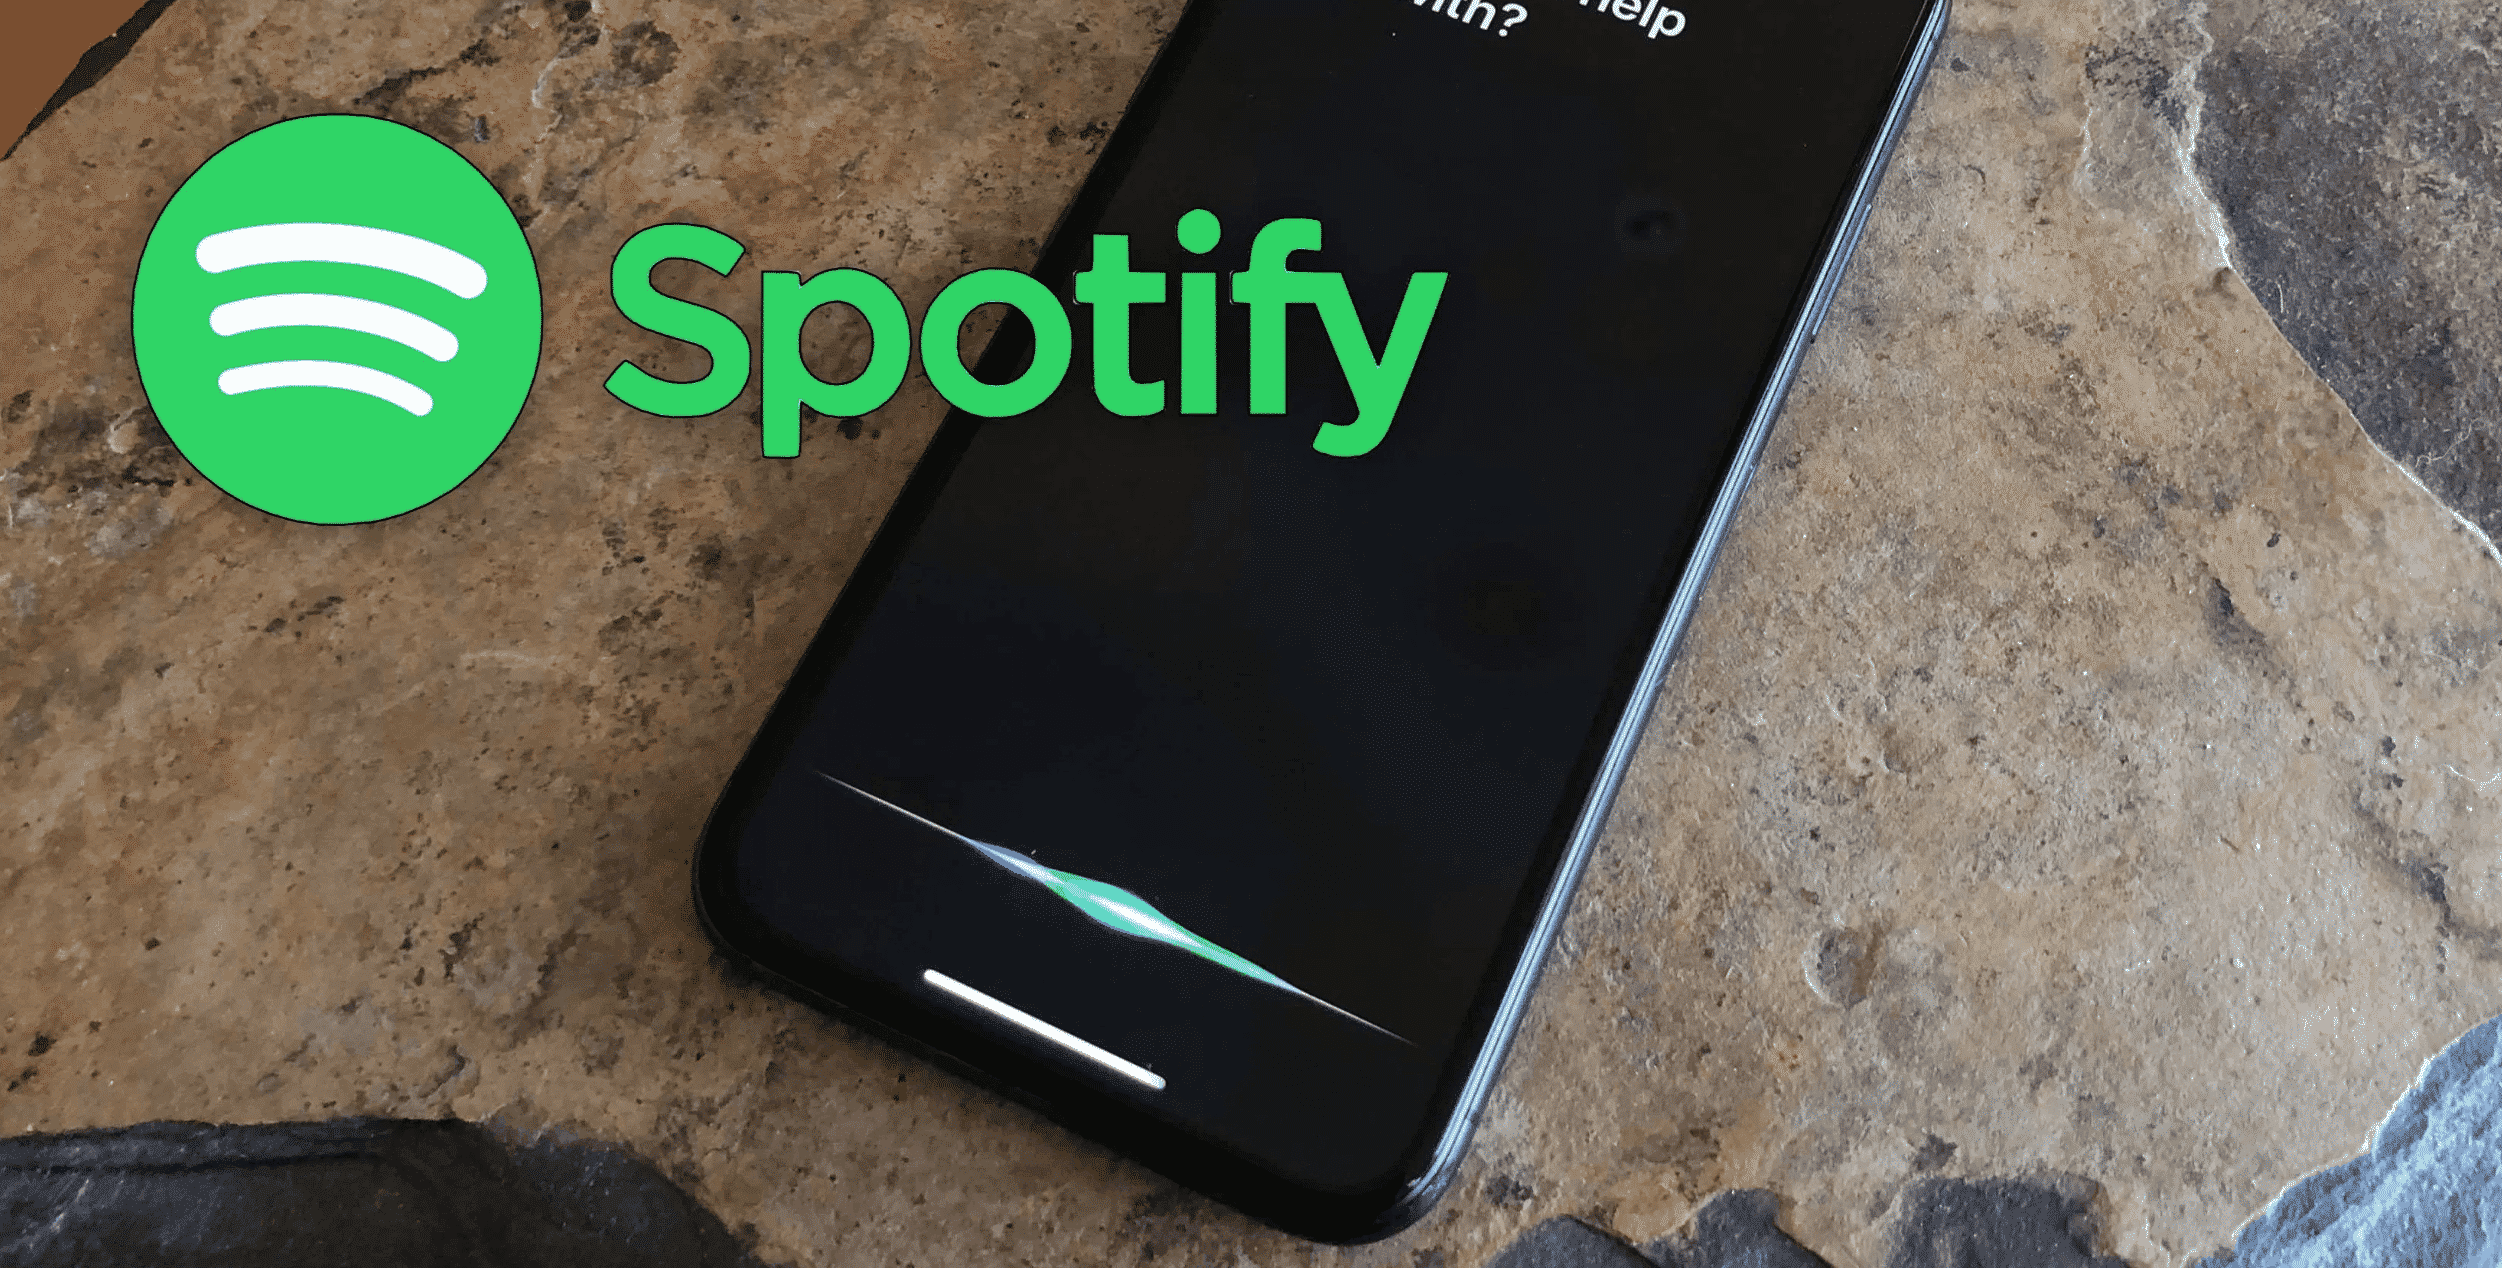 Spotify Beta on iOS 13 Tests Out Siri Functionality